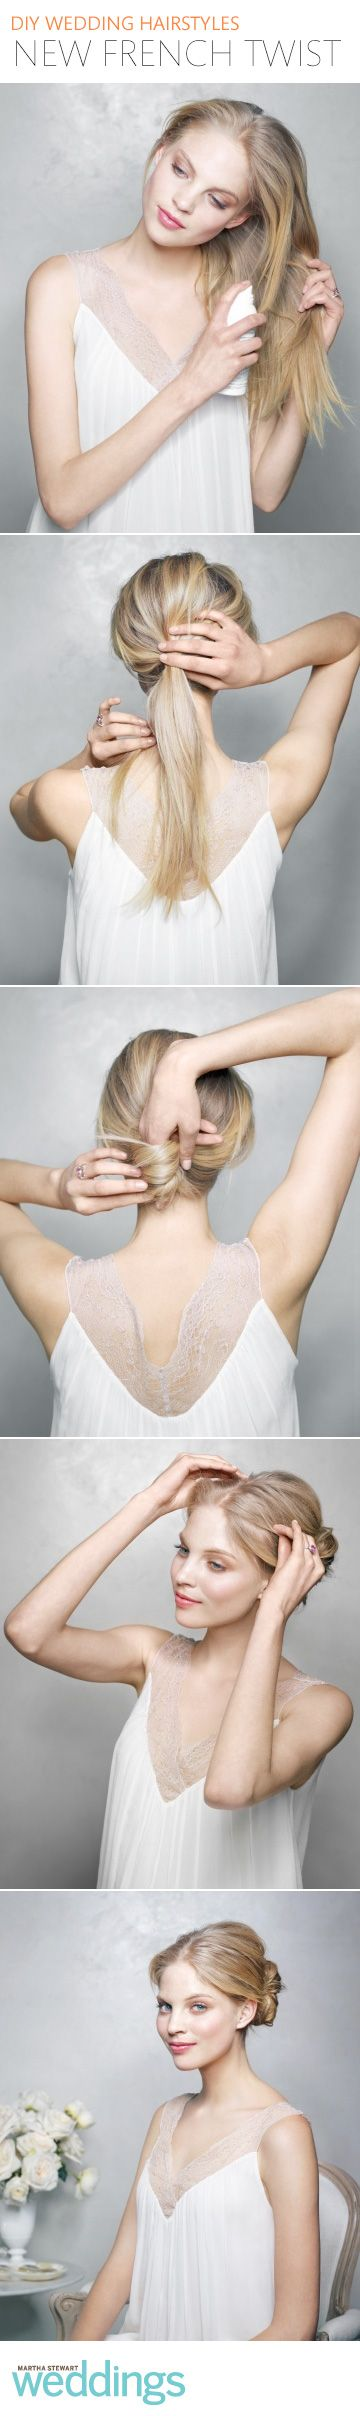 76 best Wedding Updo Hairstyles images on Pinterest | Wedding hair ...